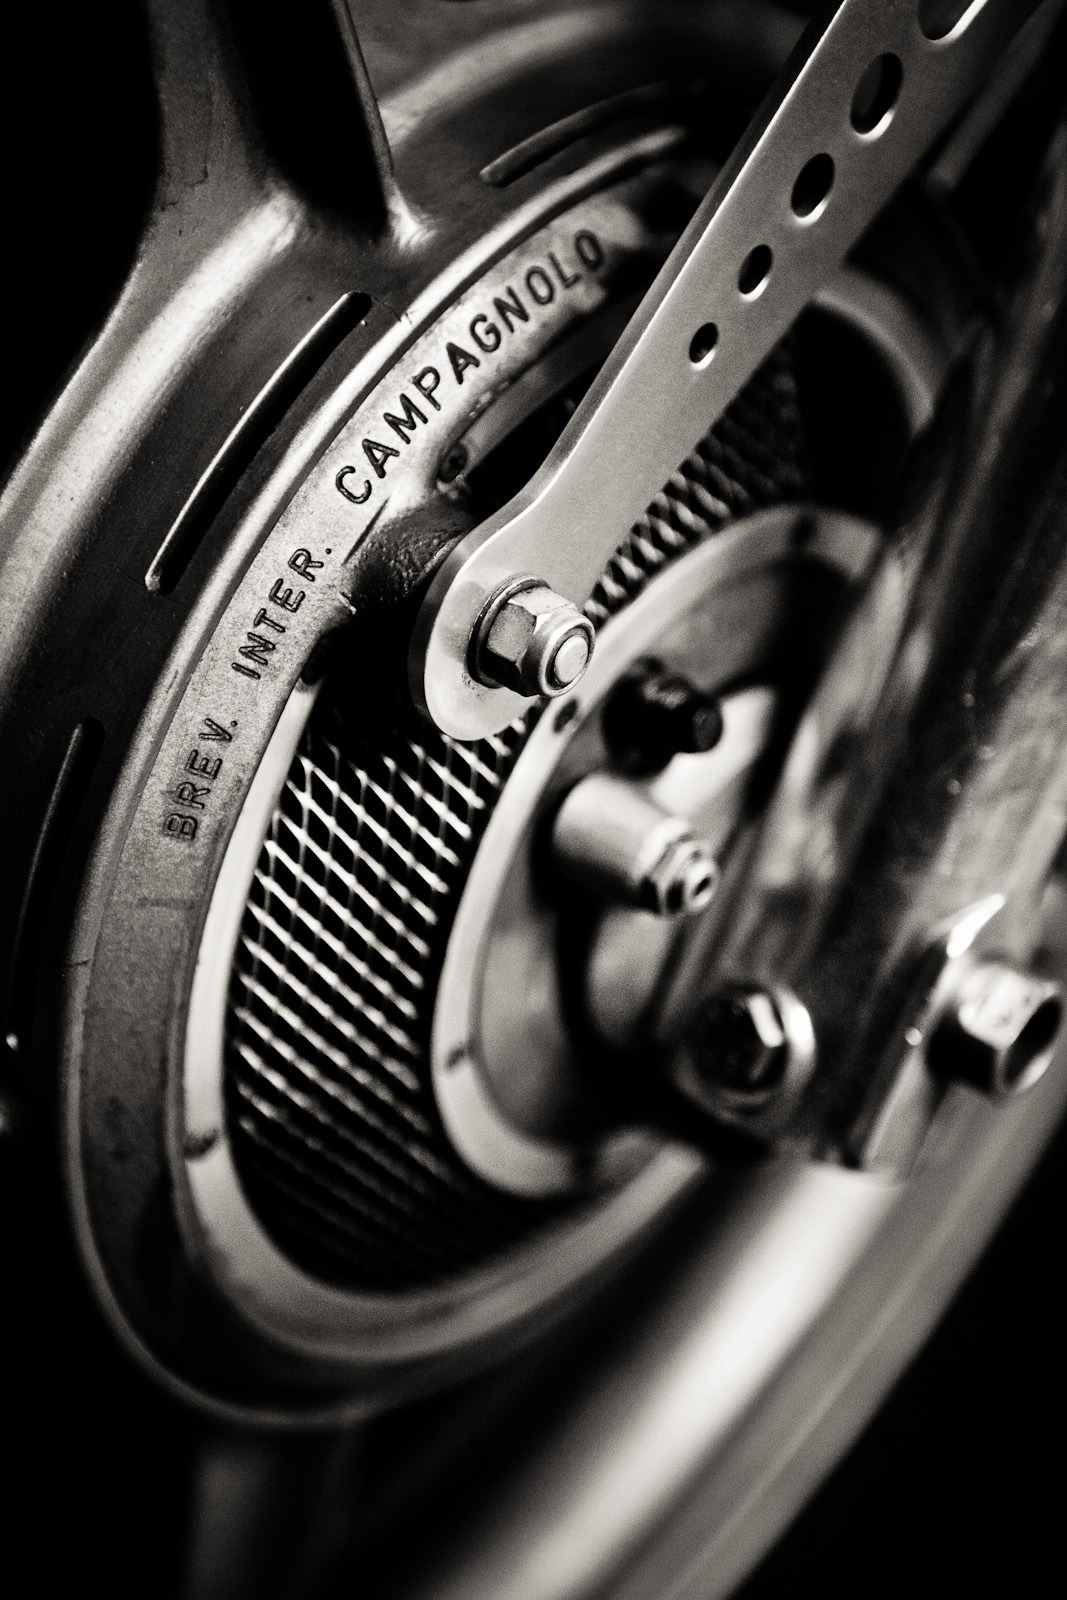 Campagnolo…as seen on Aermacchi Harley-Davidson Shot by TrueBikerSpirit